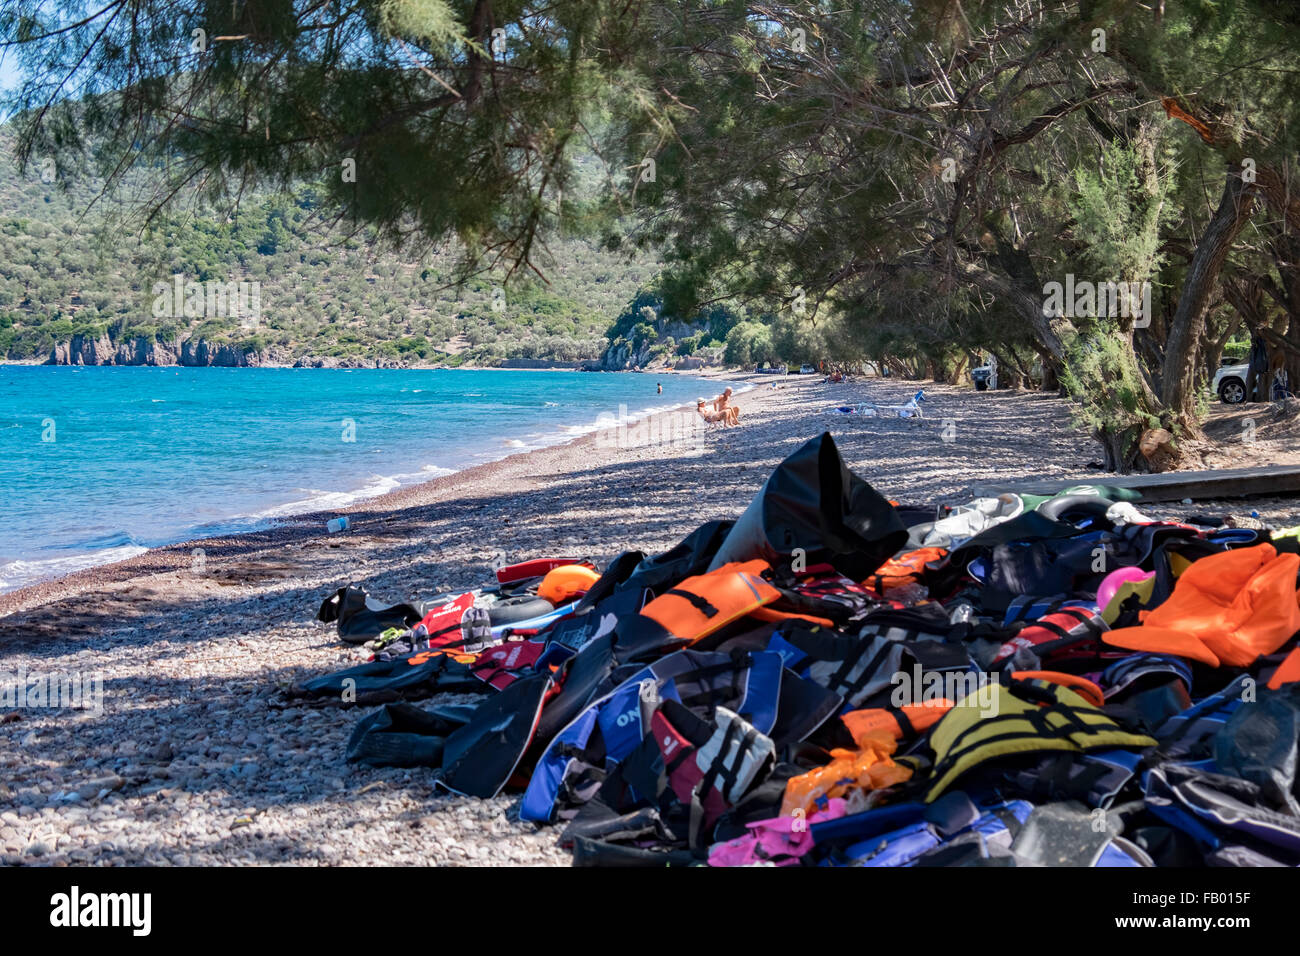 Cast off life jackets piled up on a beach from refugees landing on the island of Lesvos after crossing from Turkey. - Stock Image